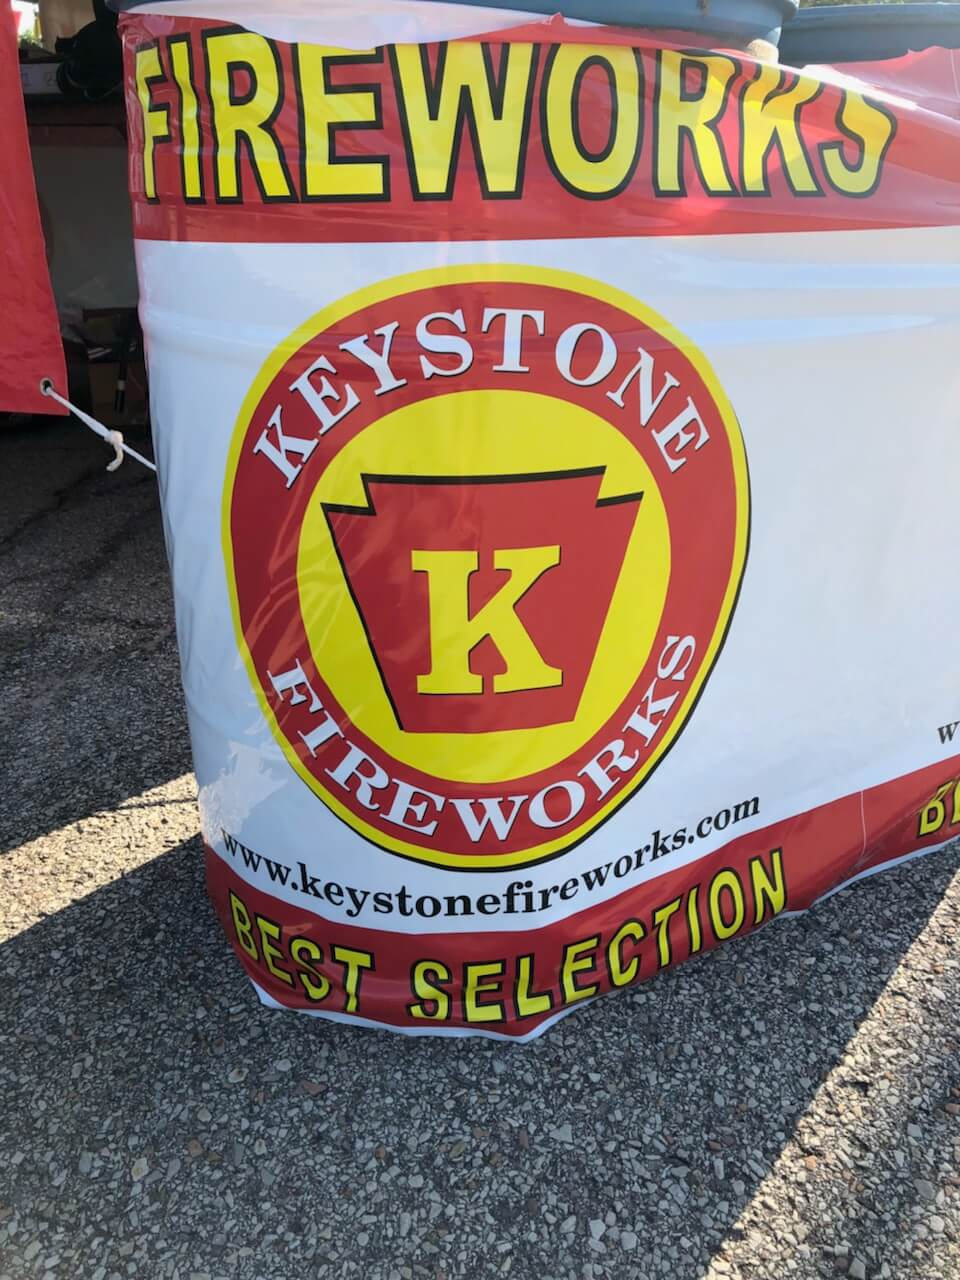 Photo of a poster with the Keystone Fireworks logo on it